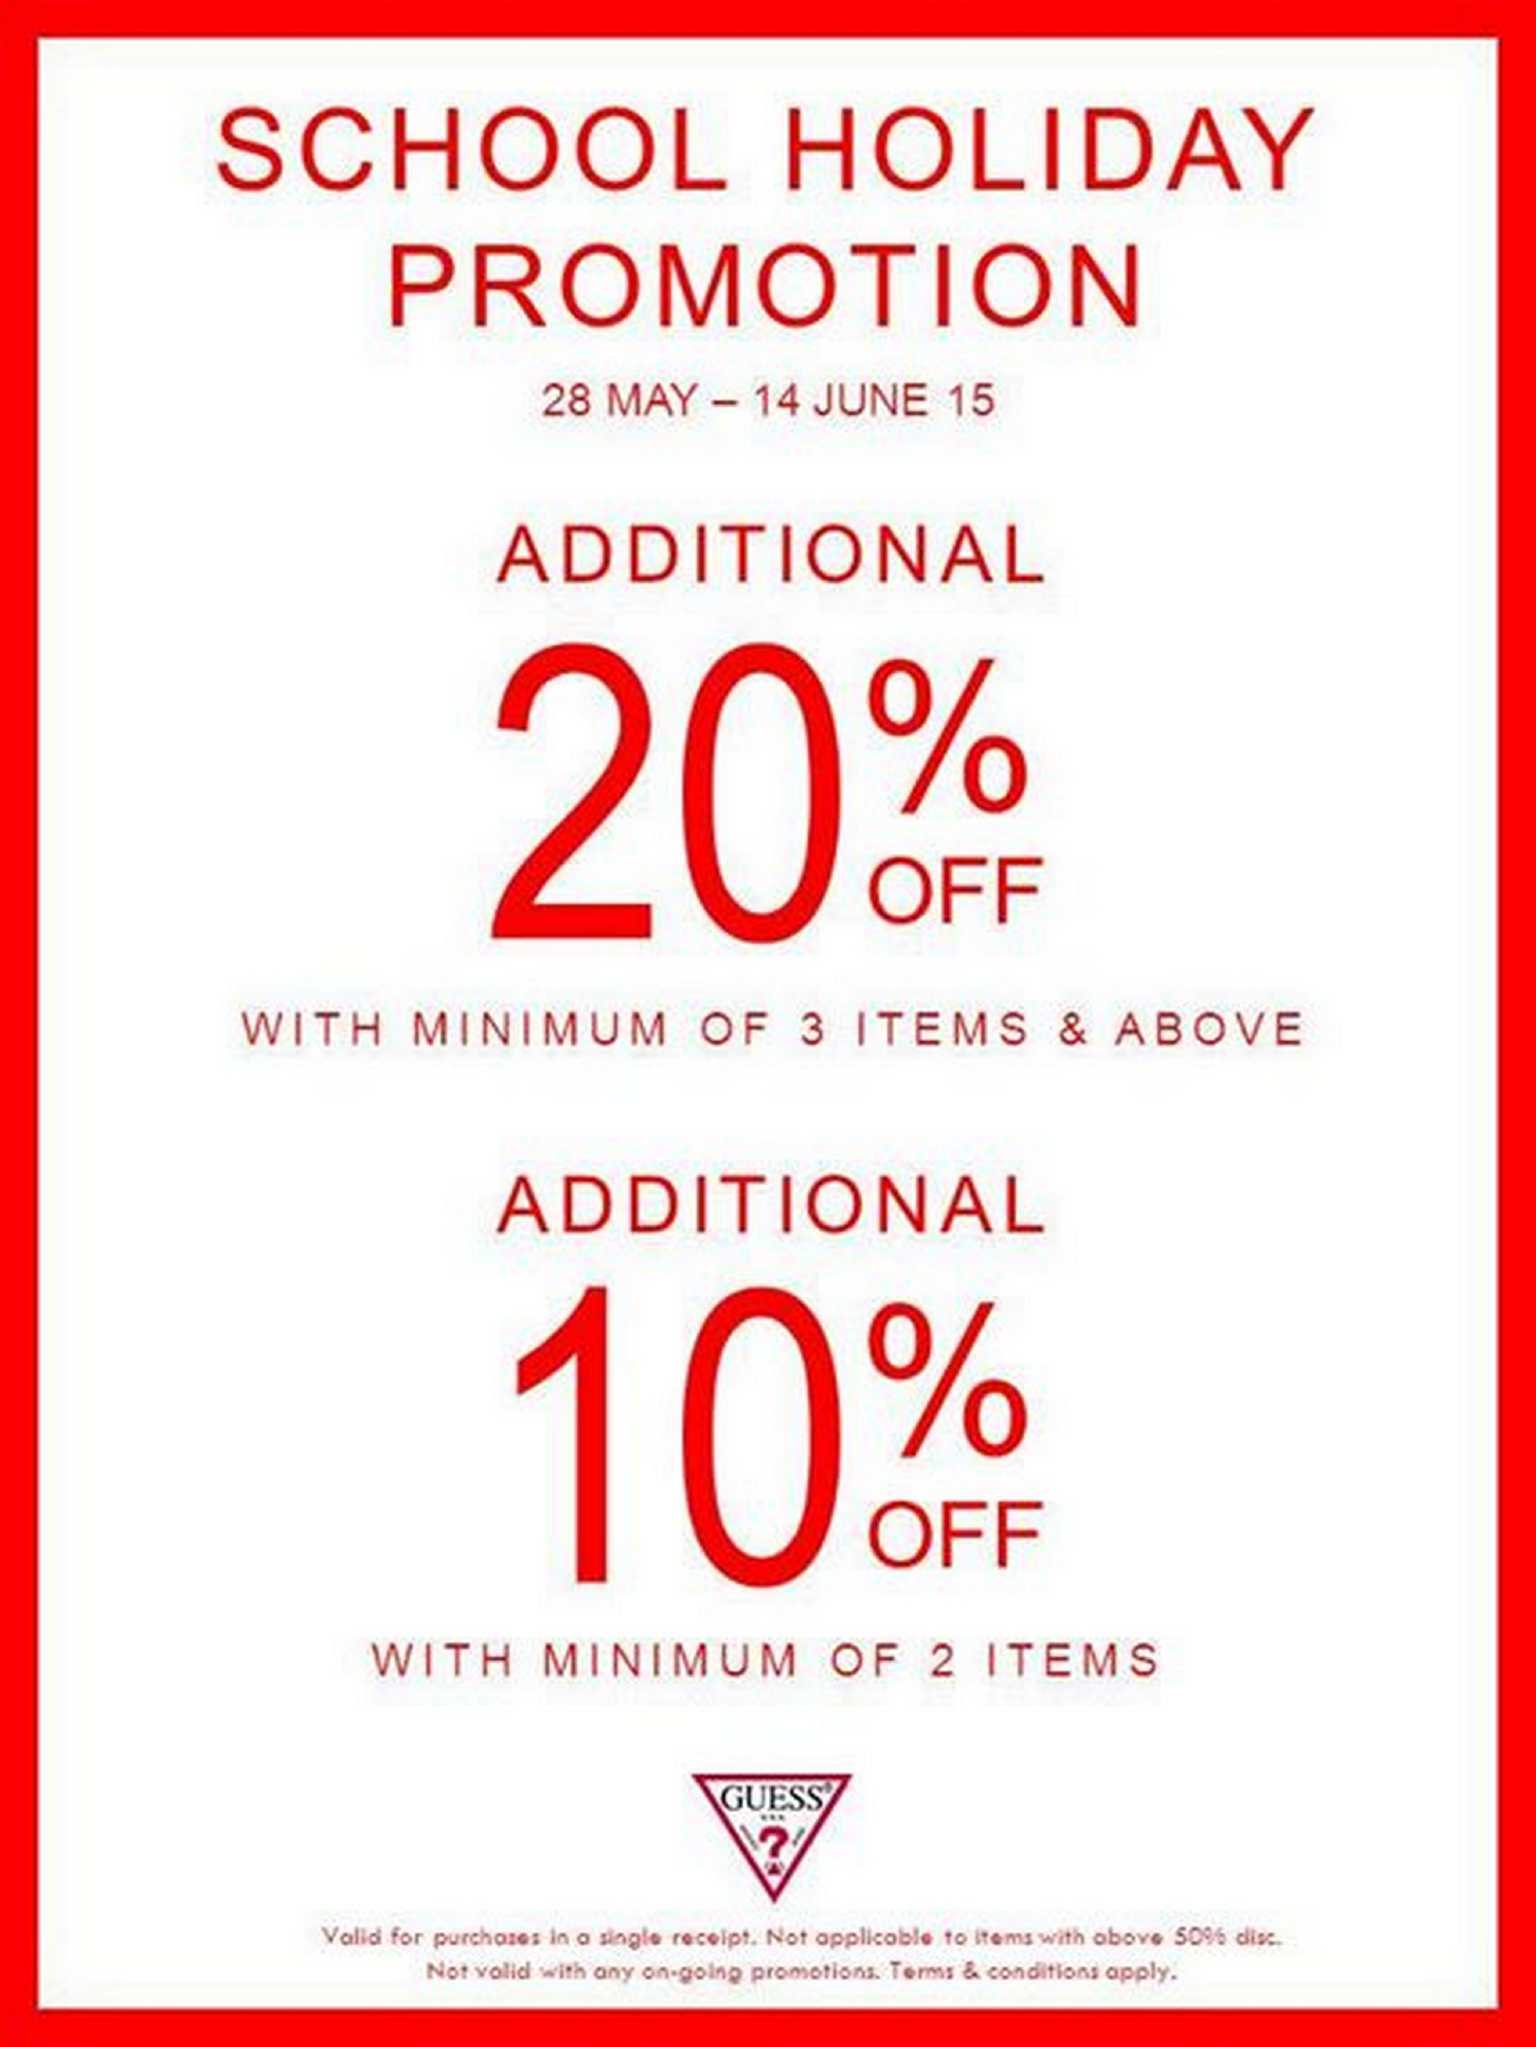 Calameo Enjoy Up To 20 Additional Off With Minimum Purchase Of 2